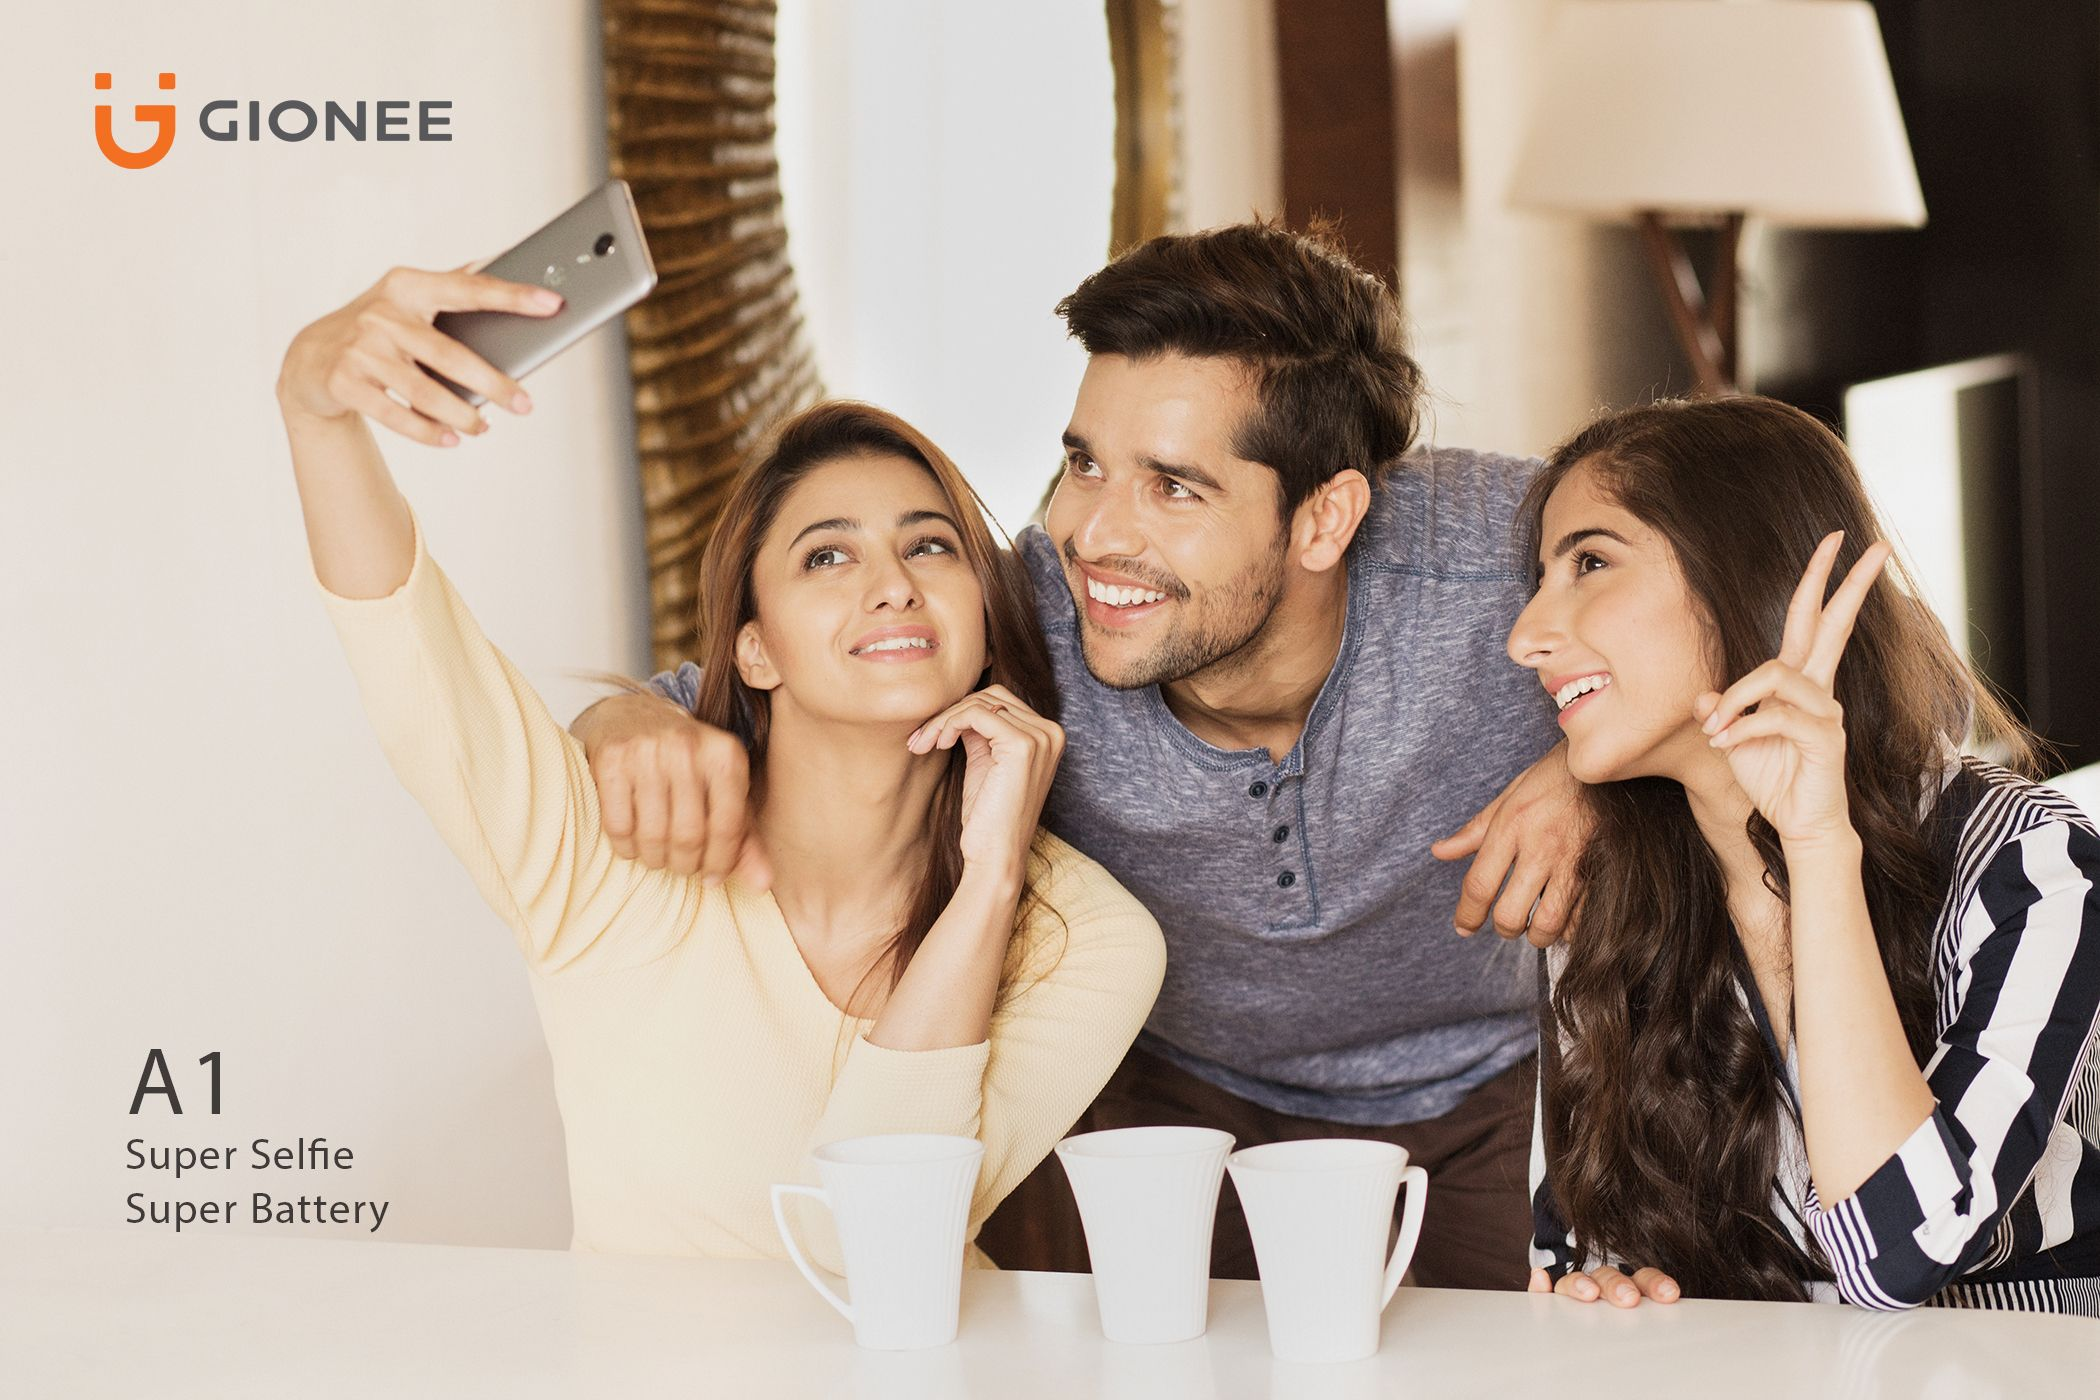 Gionee Advertising Campaign